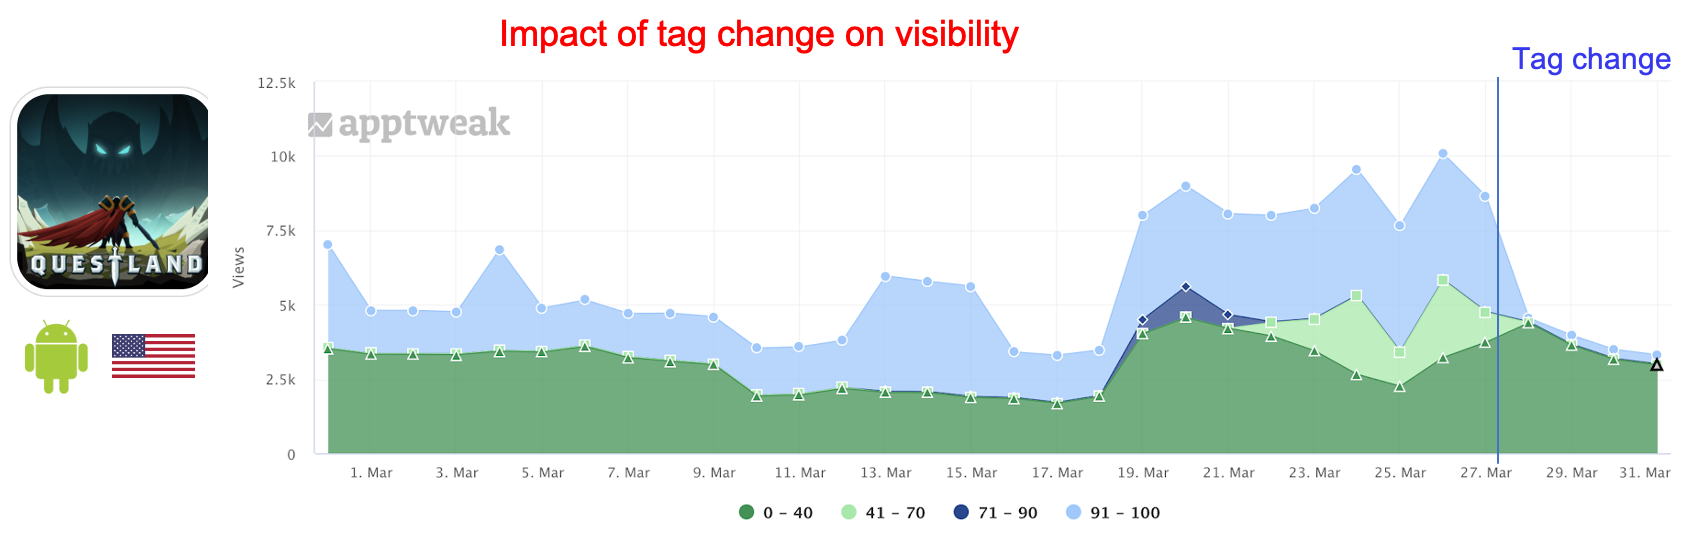 Impact in view from similar apps pointing towards Questland following a tag change.